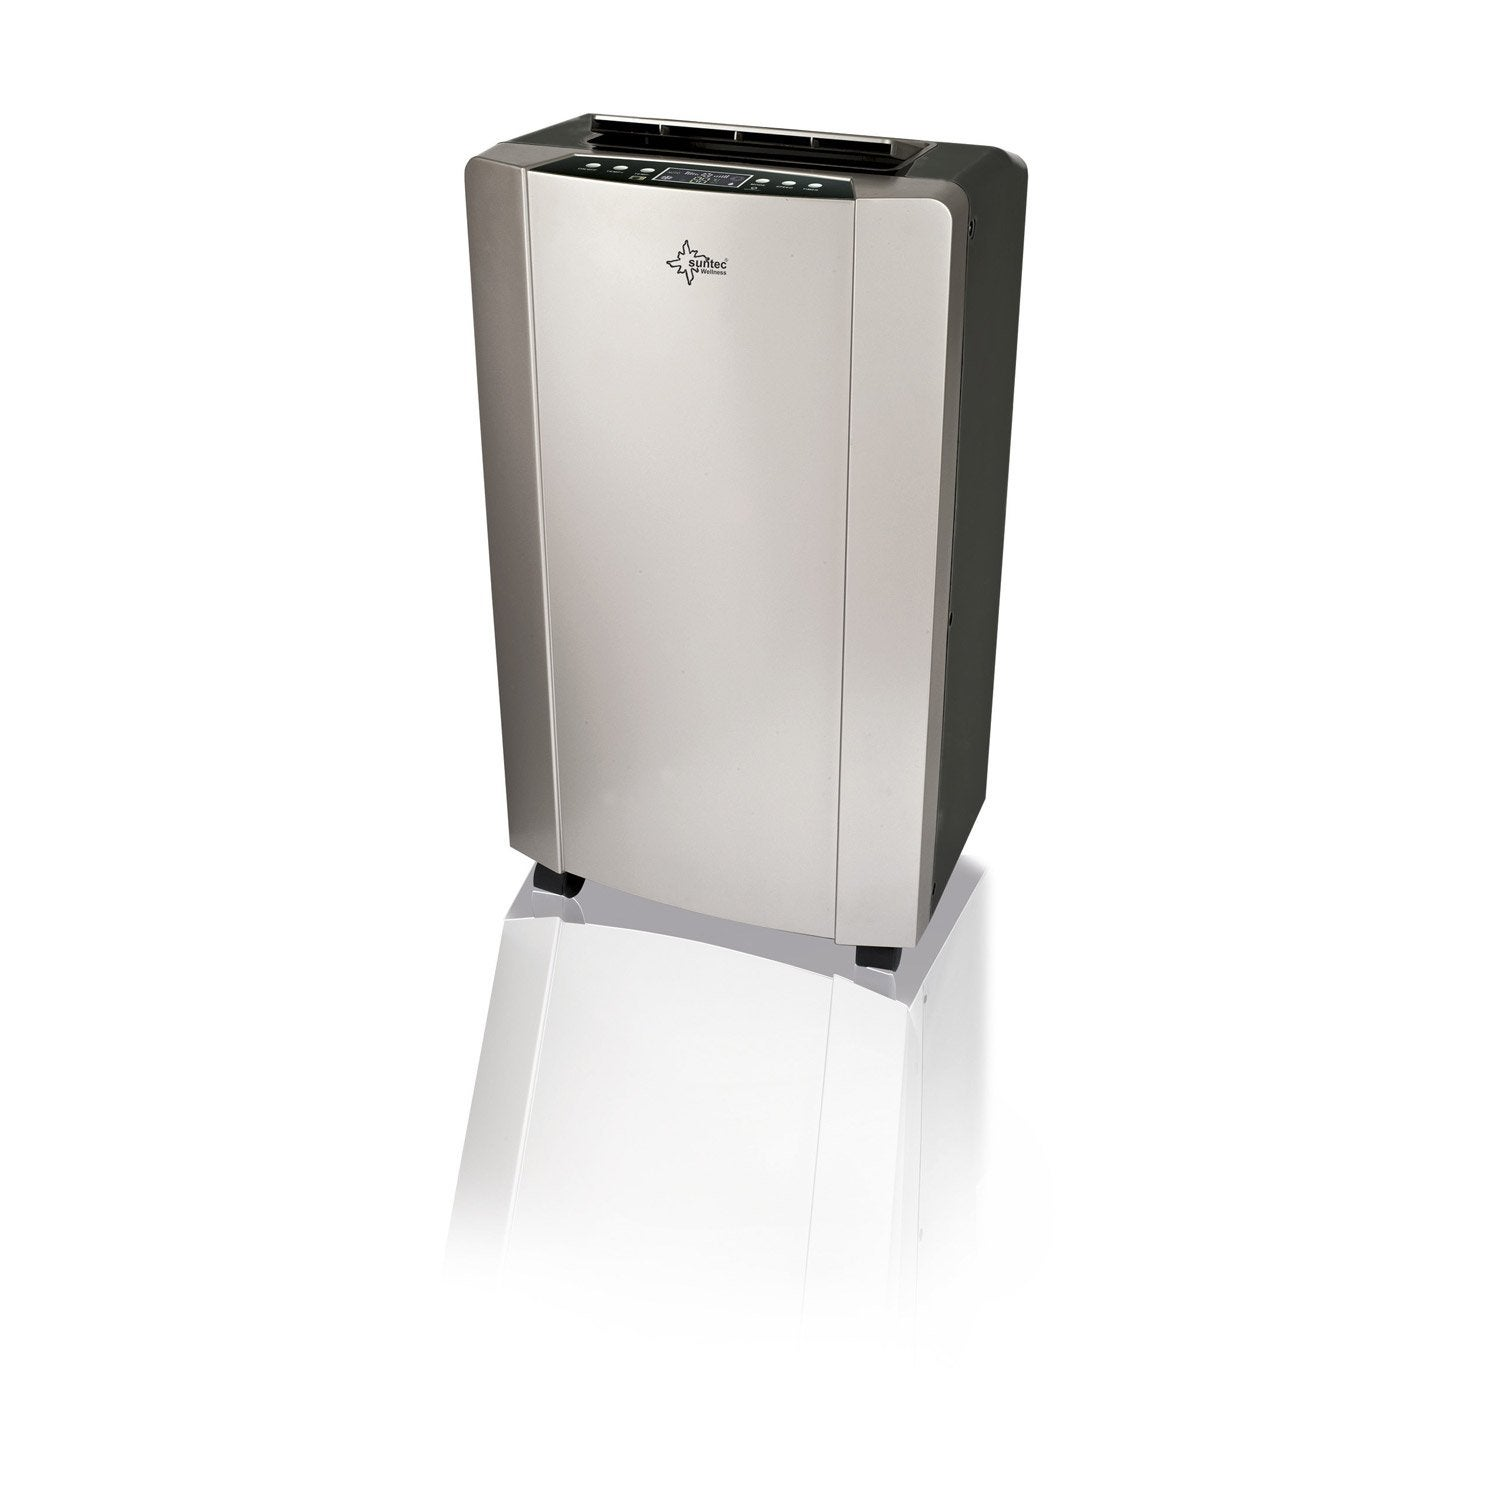 Climatiseur mobile progress 2000w leroy merlin - Clim mobile leroy merlin ...